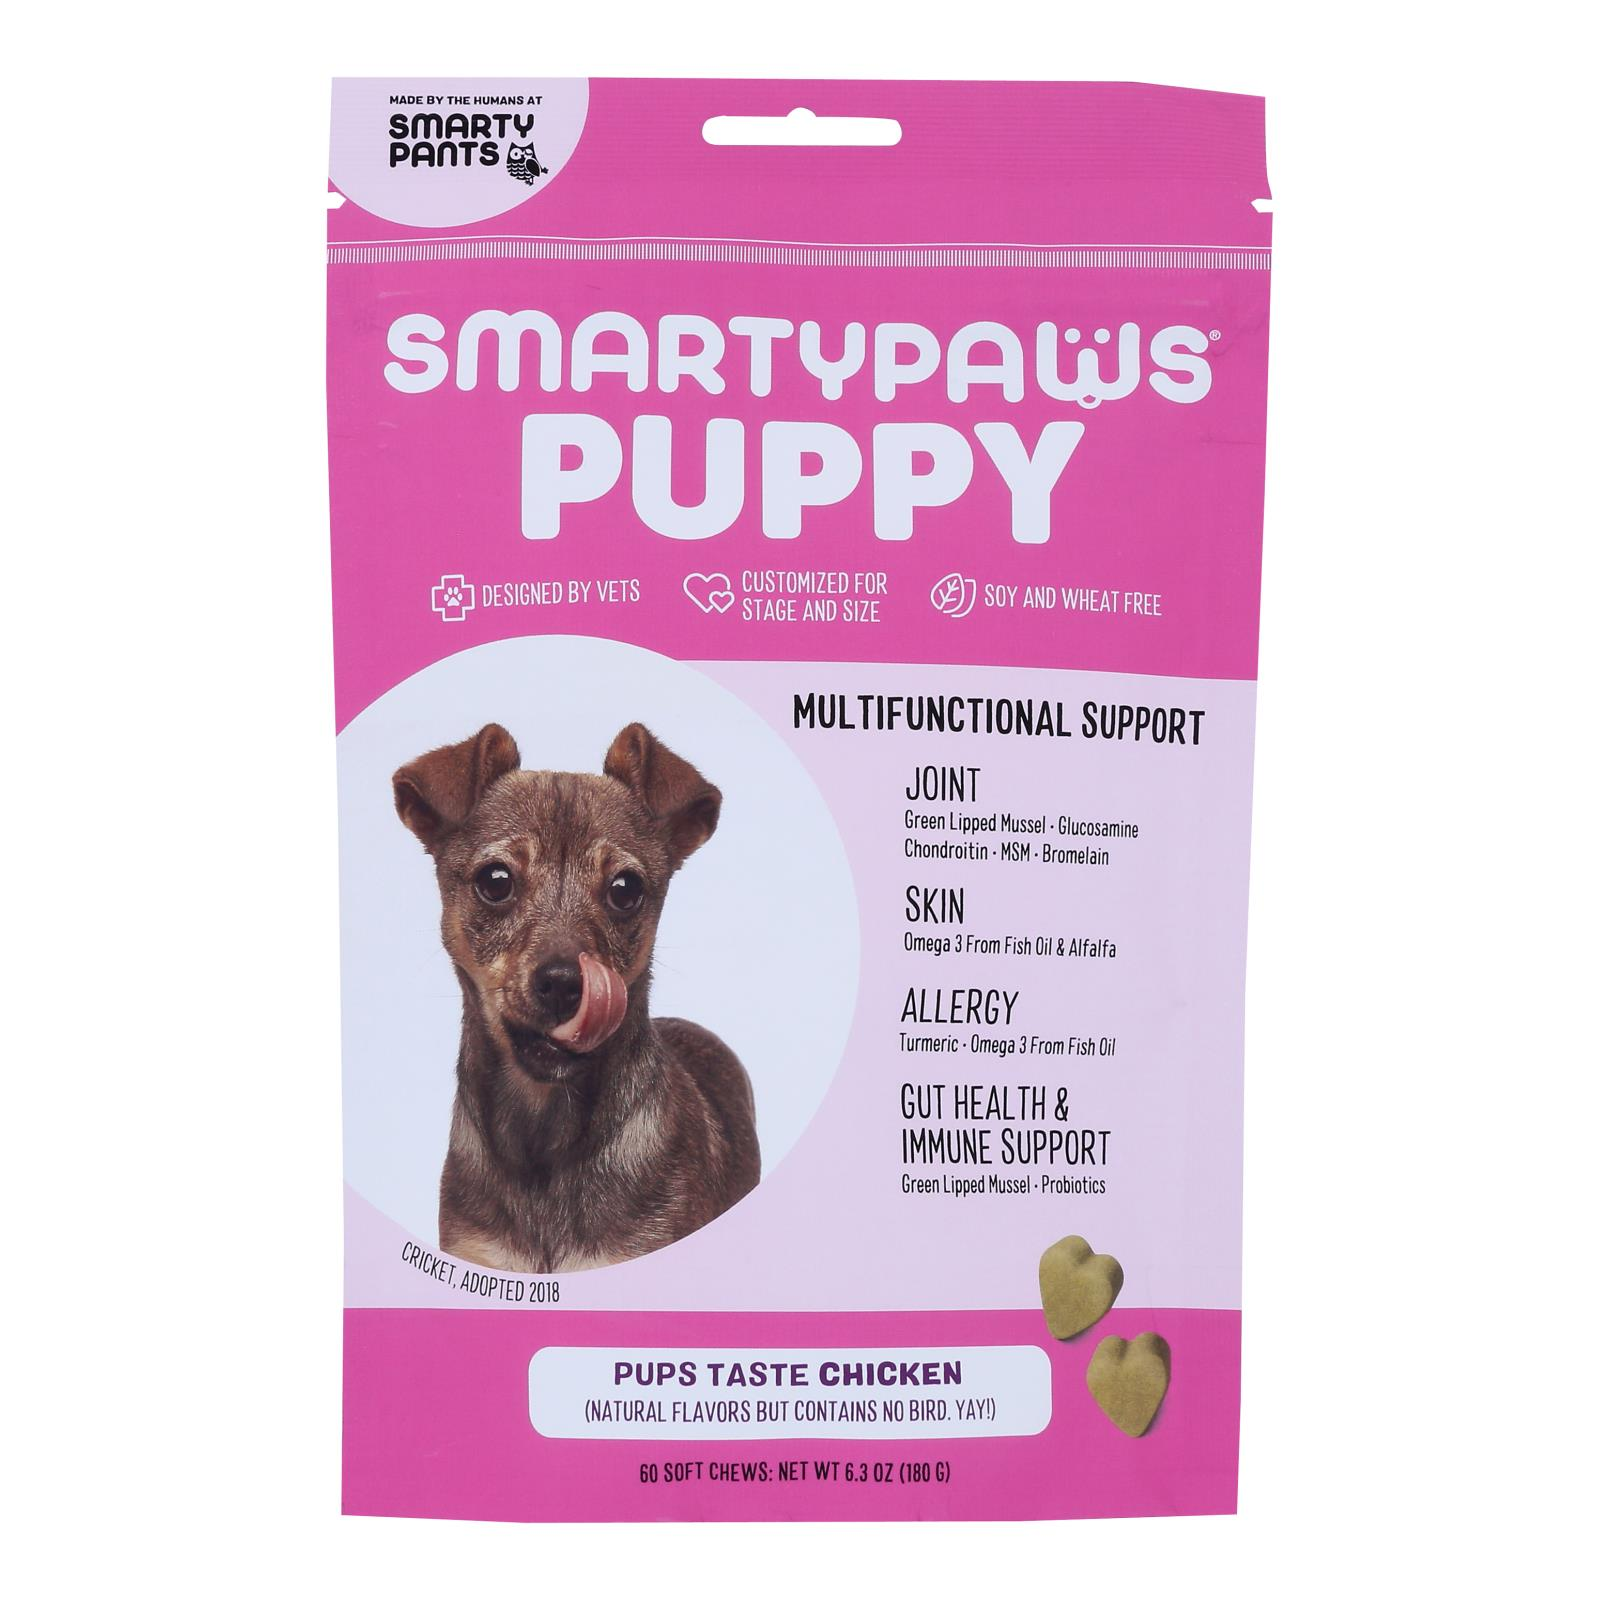 Smartypaws - Puppy Frmla Chicken - 1 Each - 60 CT